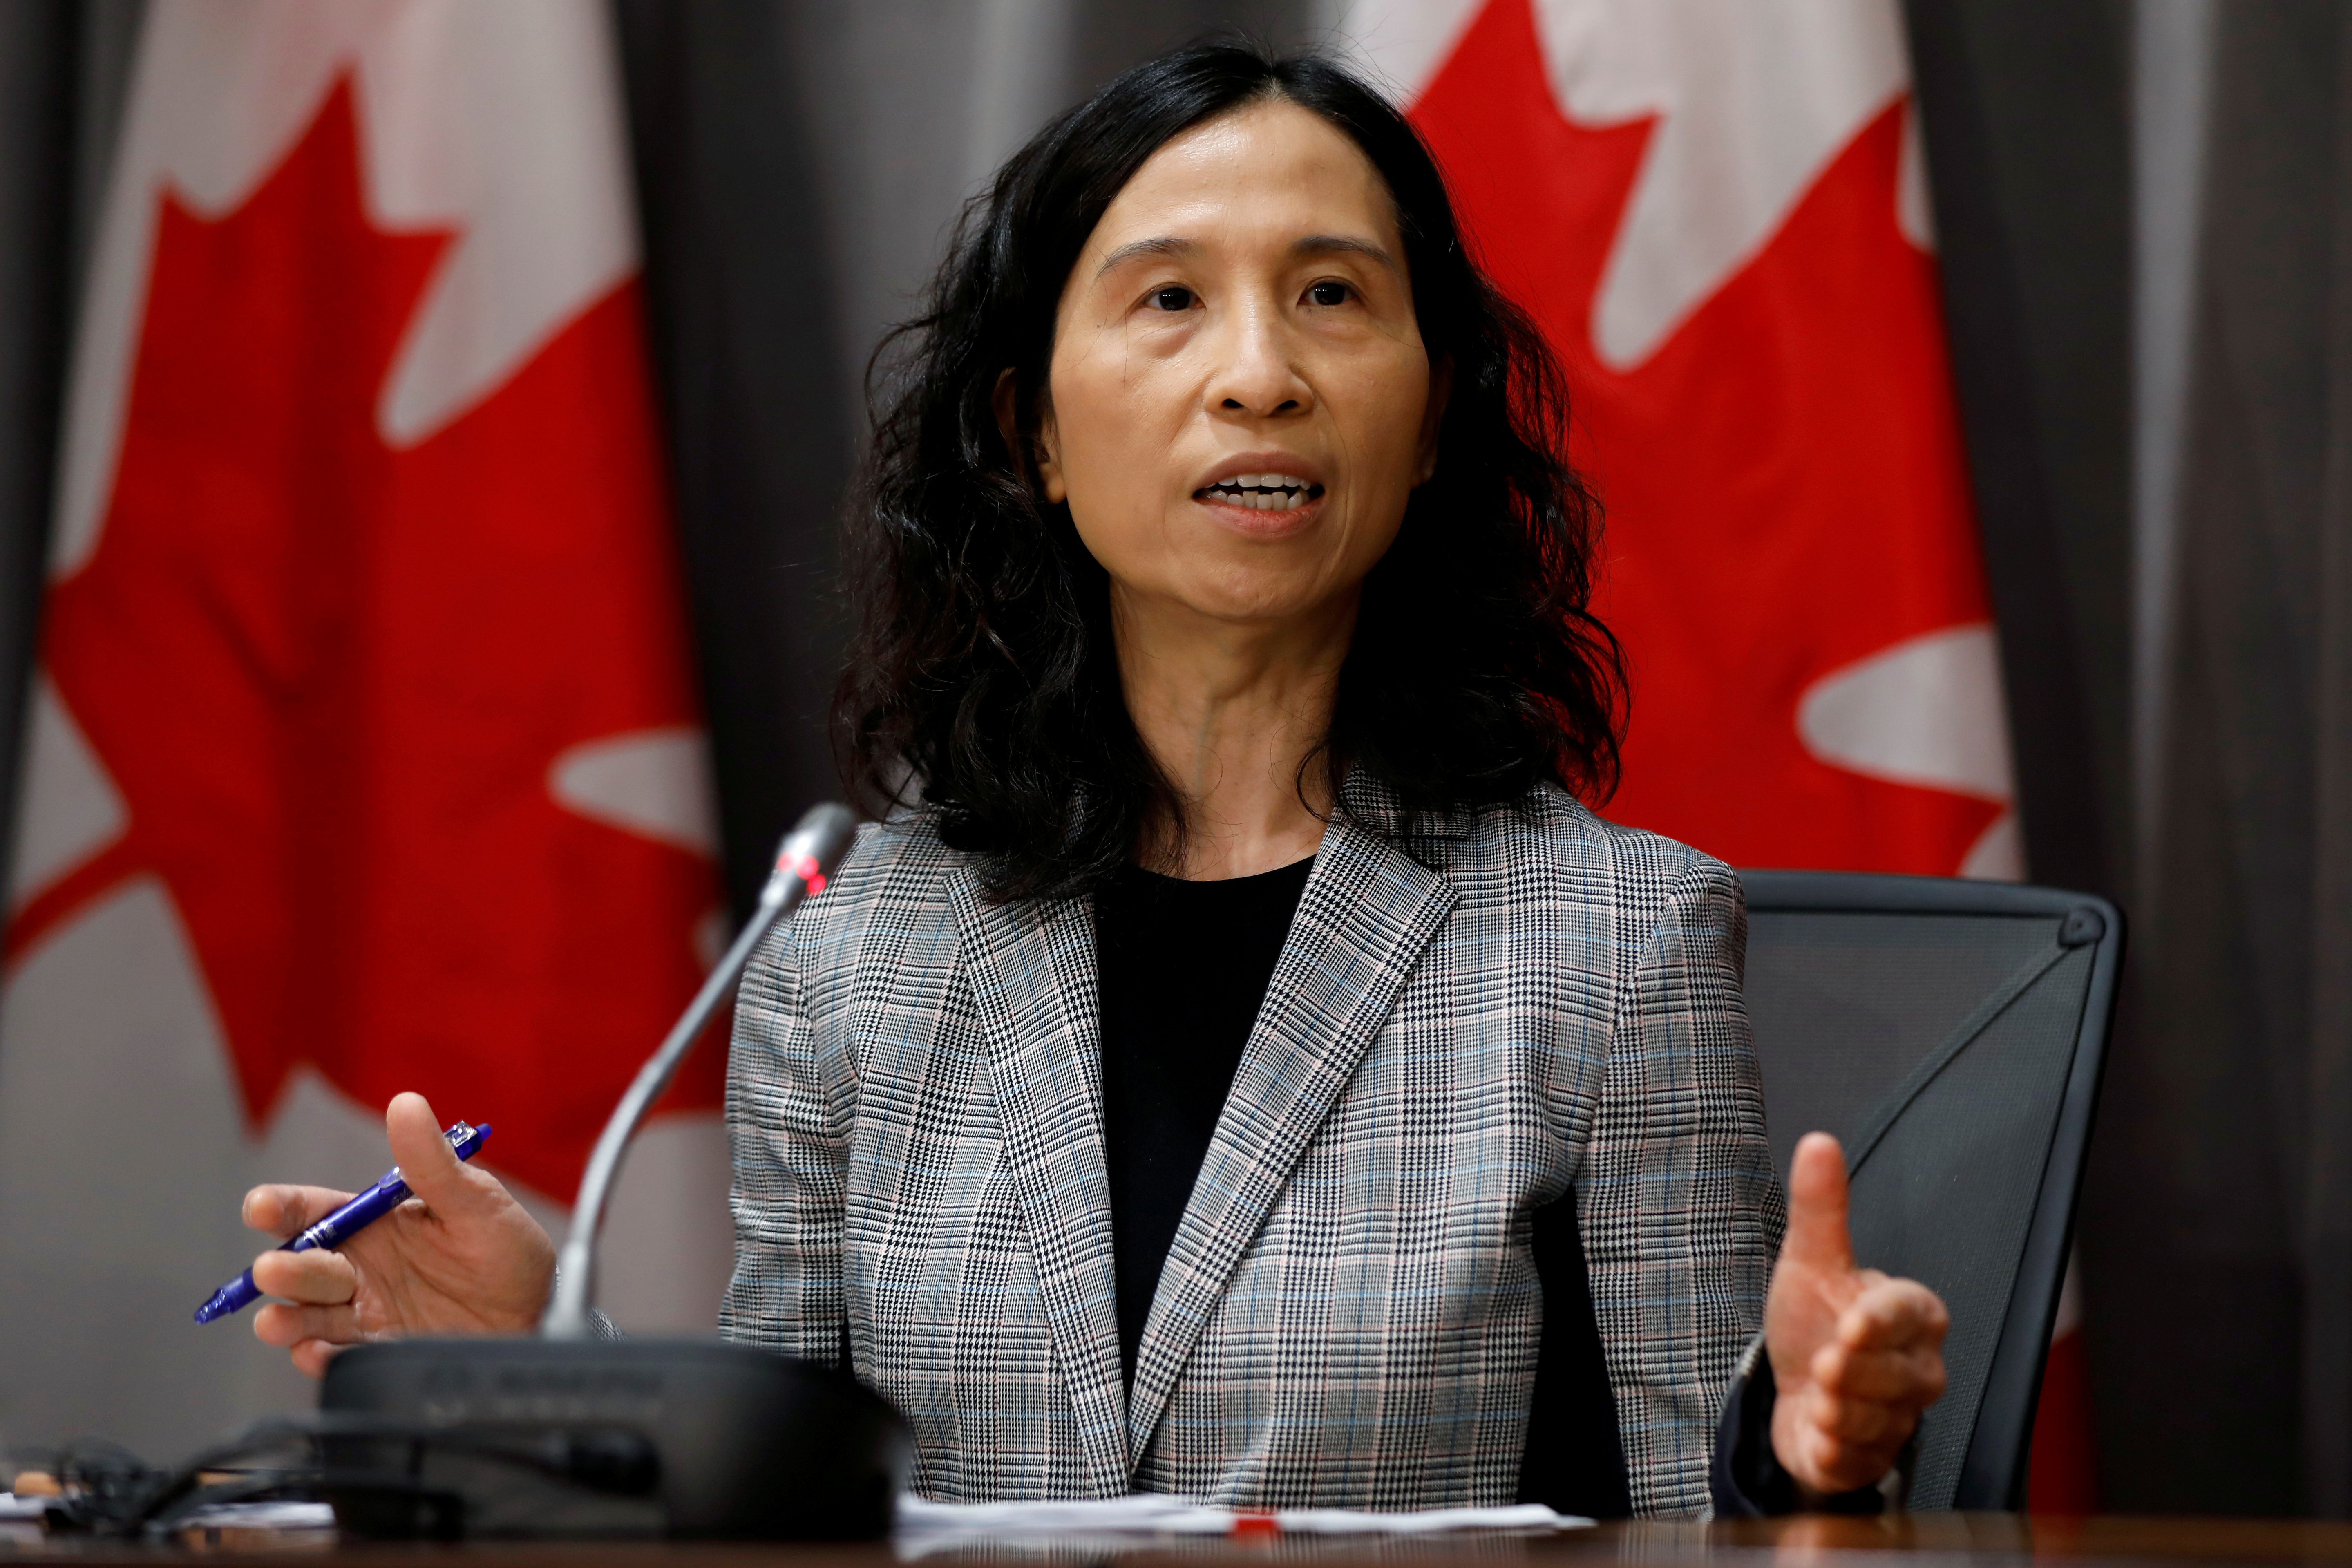 FILE PHOTO: Canada's Chief Public Health Officer Dr. Theresa Tam attends a news conference as efforts continue to help slow the spread of coronavirus disease (COVID-19) in Ottawa, Ontario, Canada March 23, 2020. REUTERS/Blair Gable/File Photo